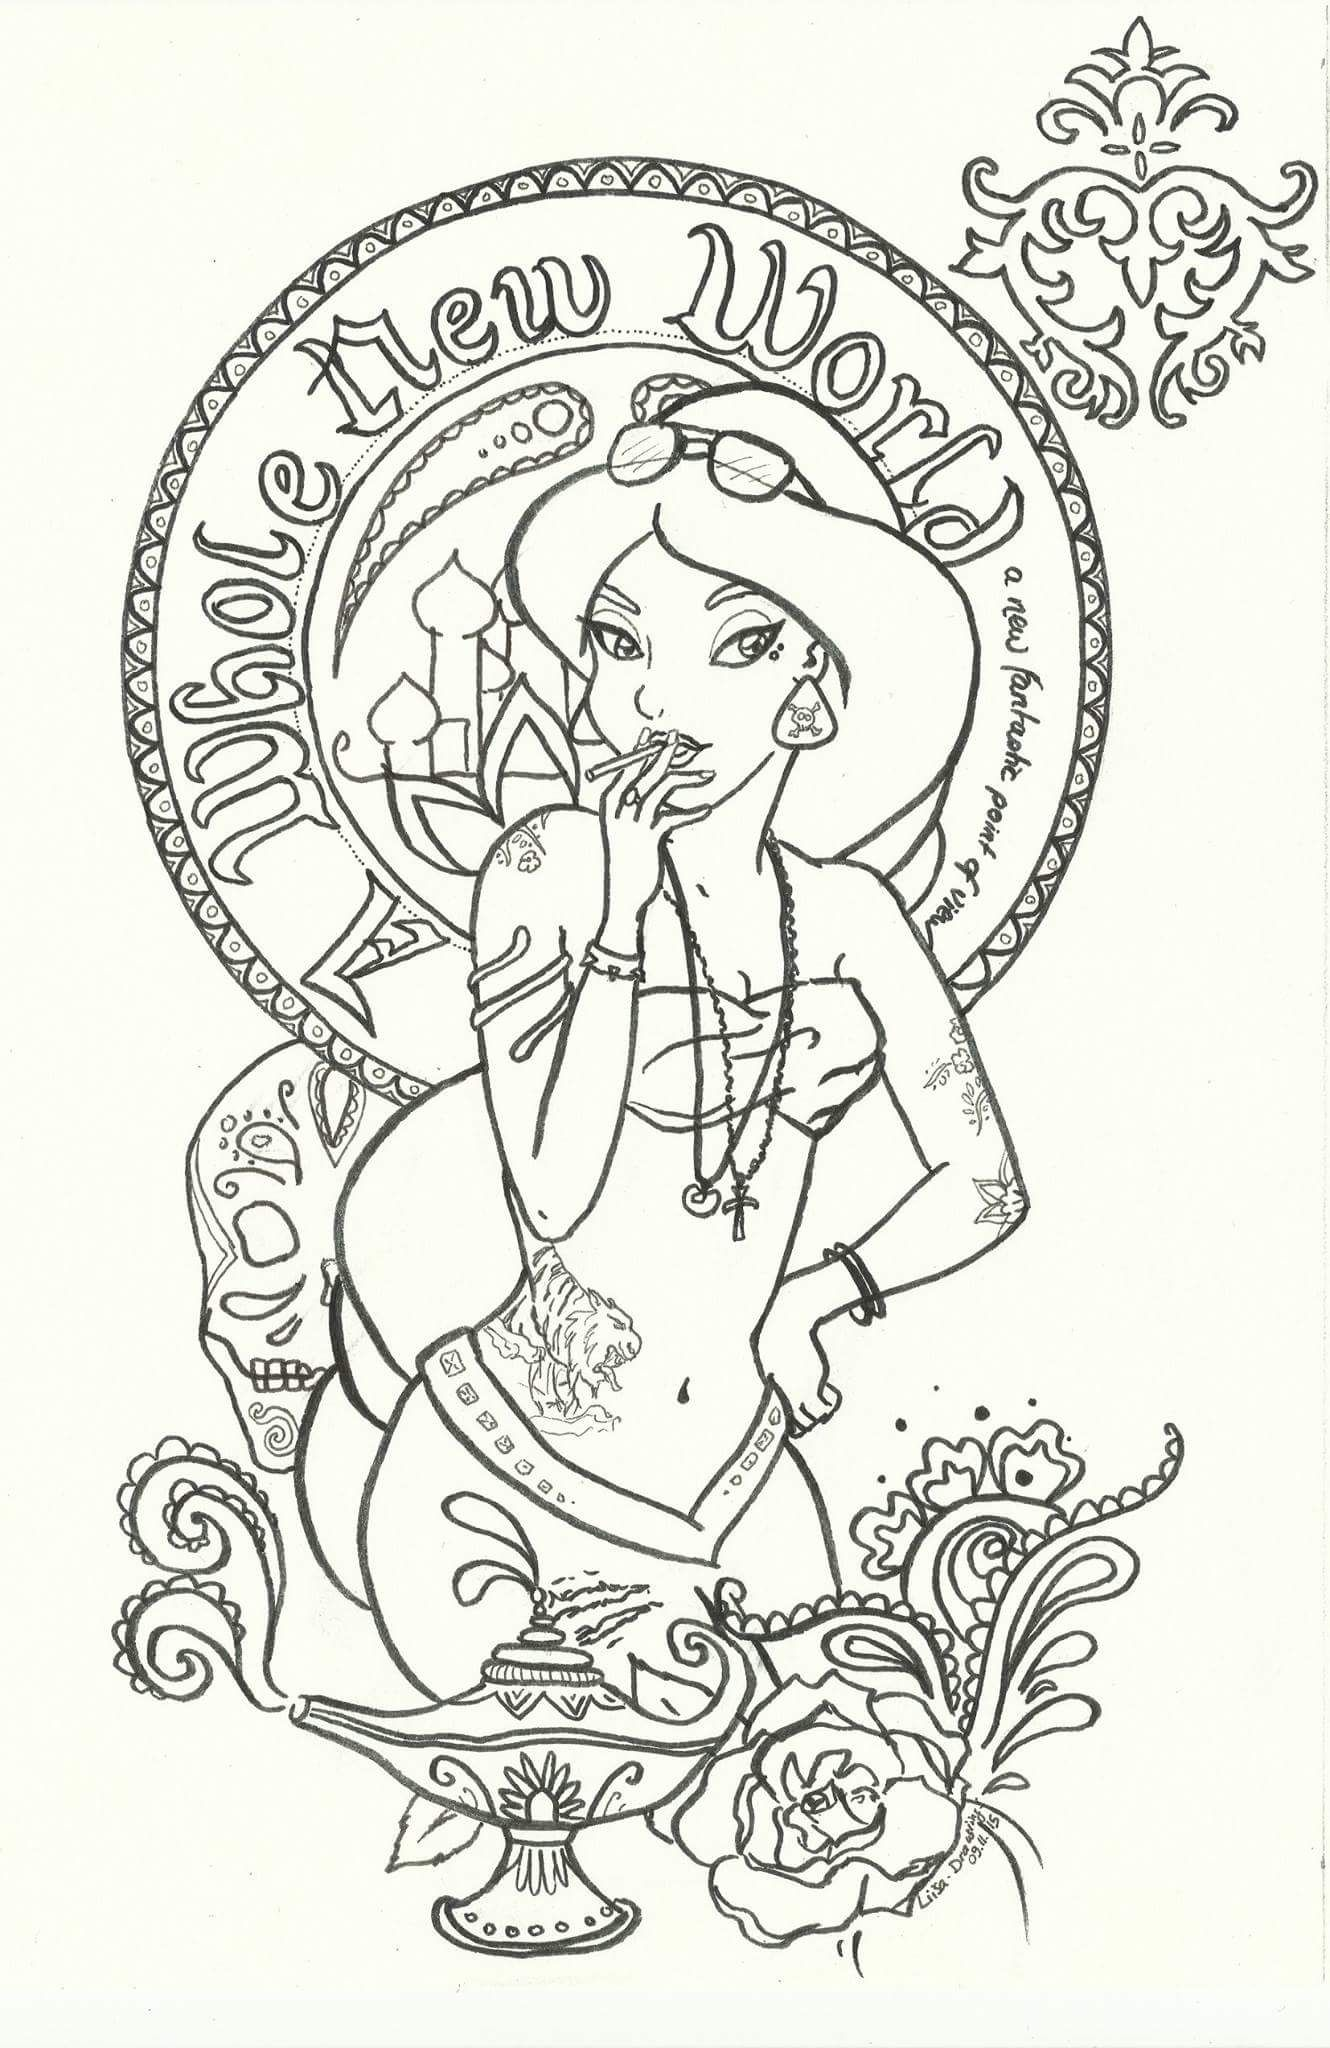 Pin by Melissa Perry on color pages | Princess jasmine ...